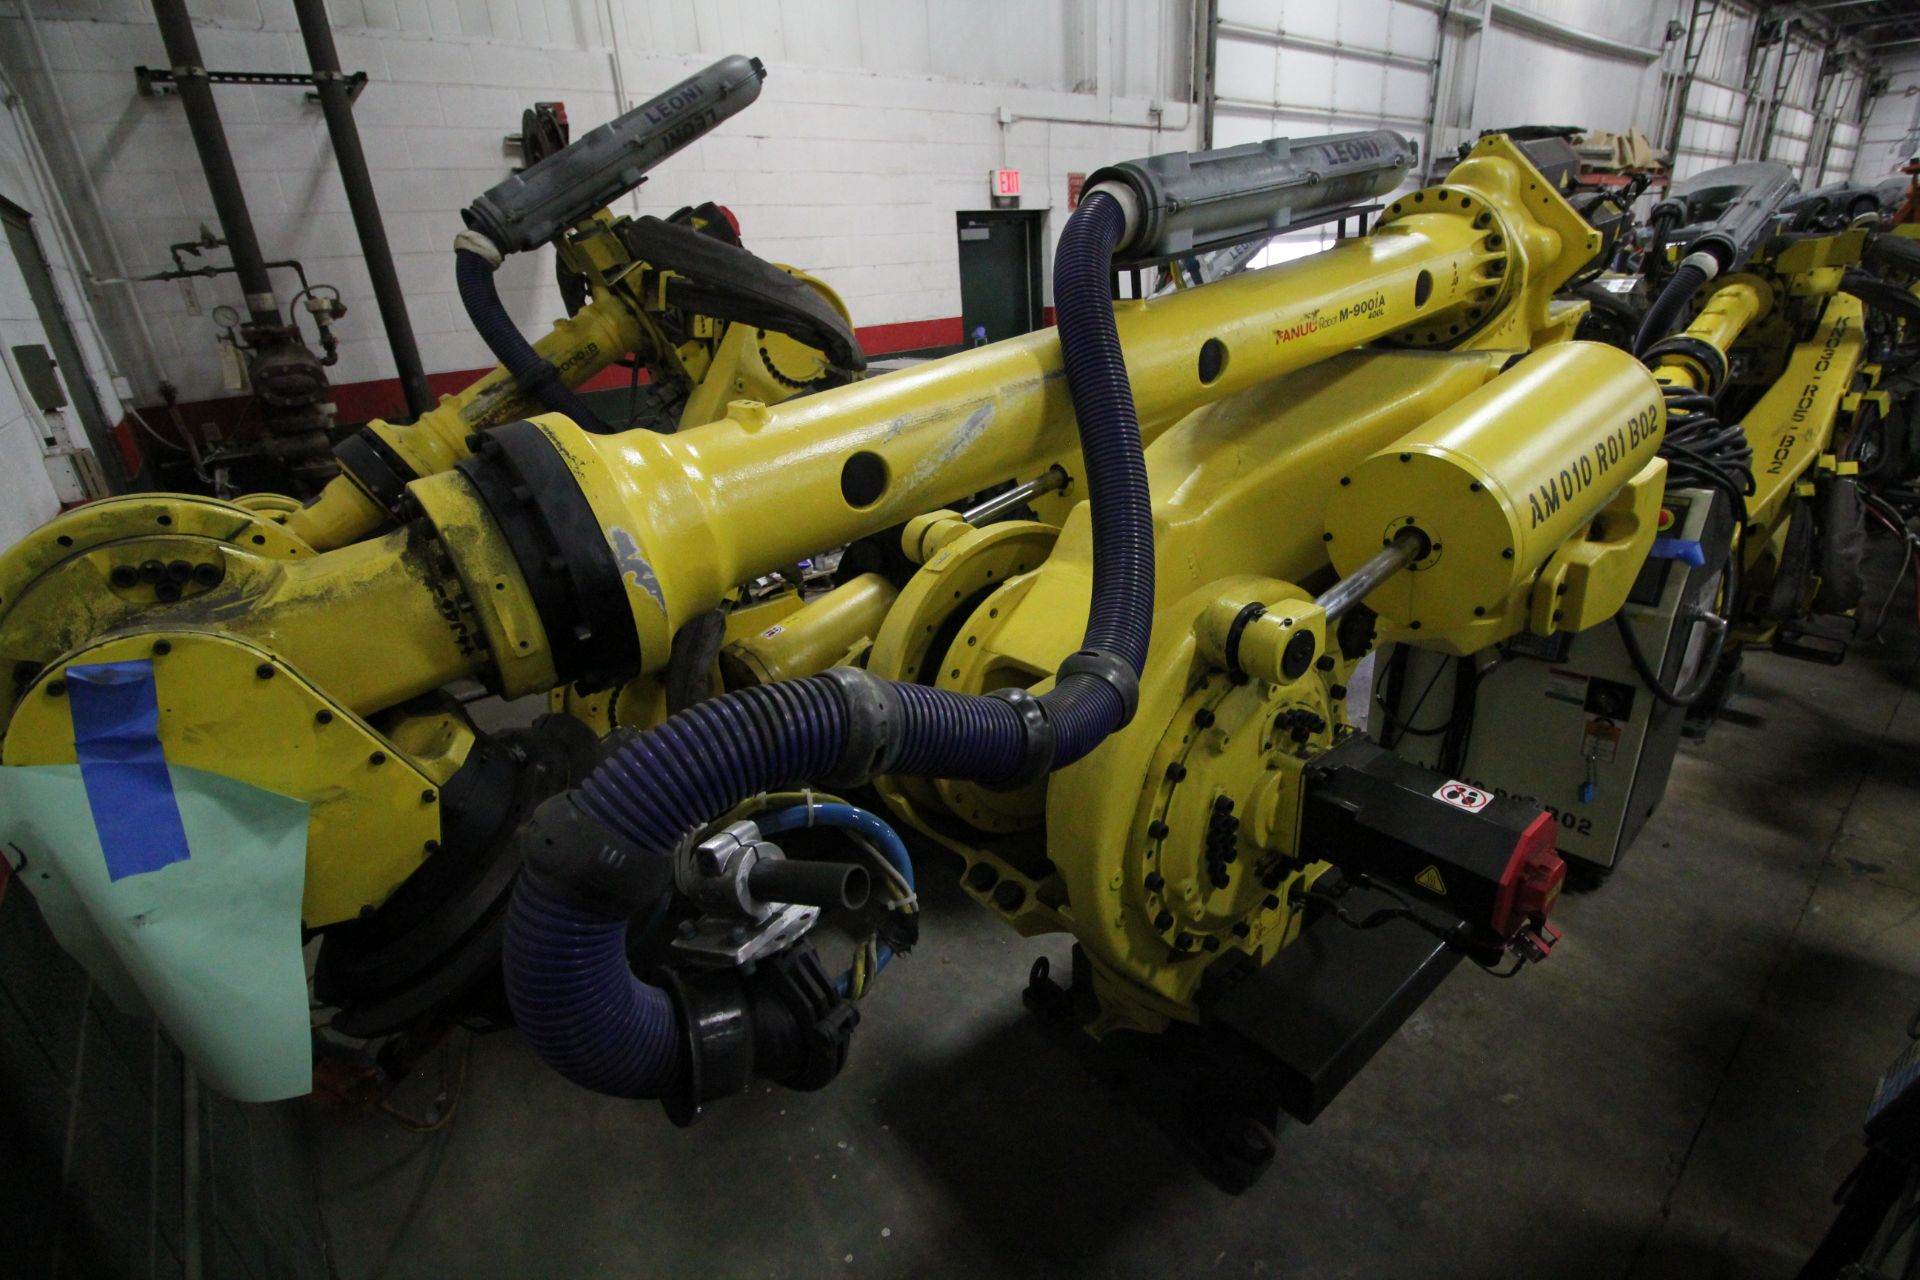 FANUC ROBOT M-900iA/400L WITH R-30iA CONTROLLER, TEACHPENDANT AND CABLES, SN 153431, YEAR 2014 - Image 4 of 11